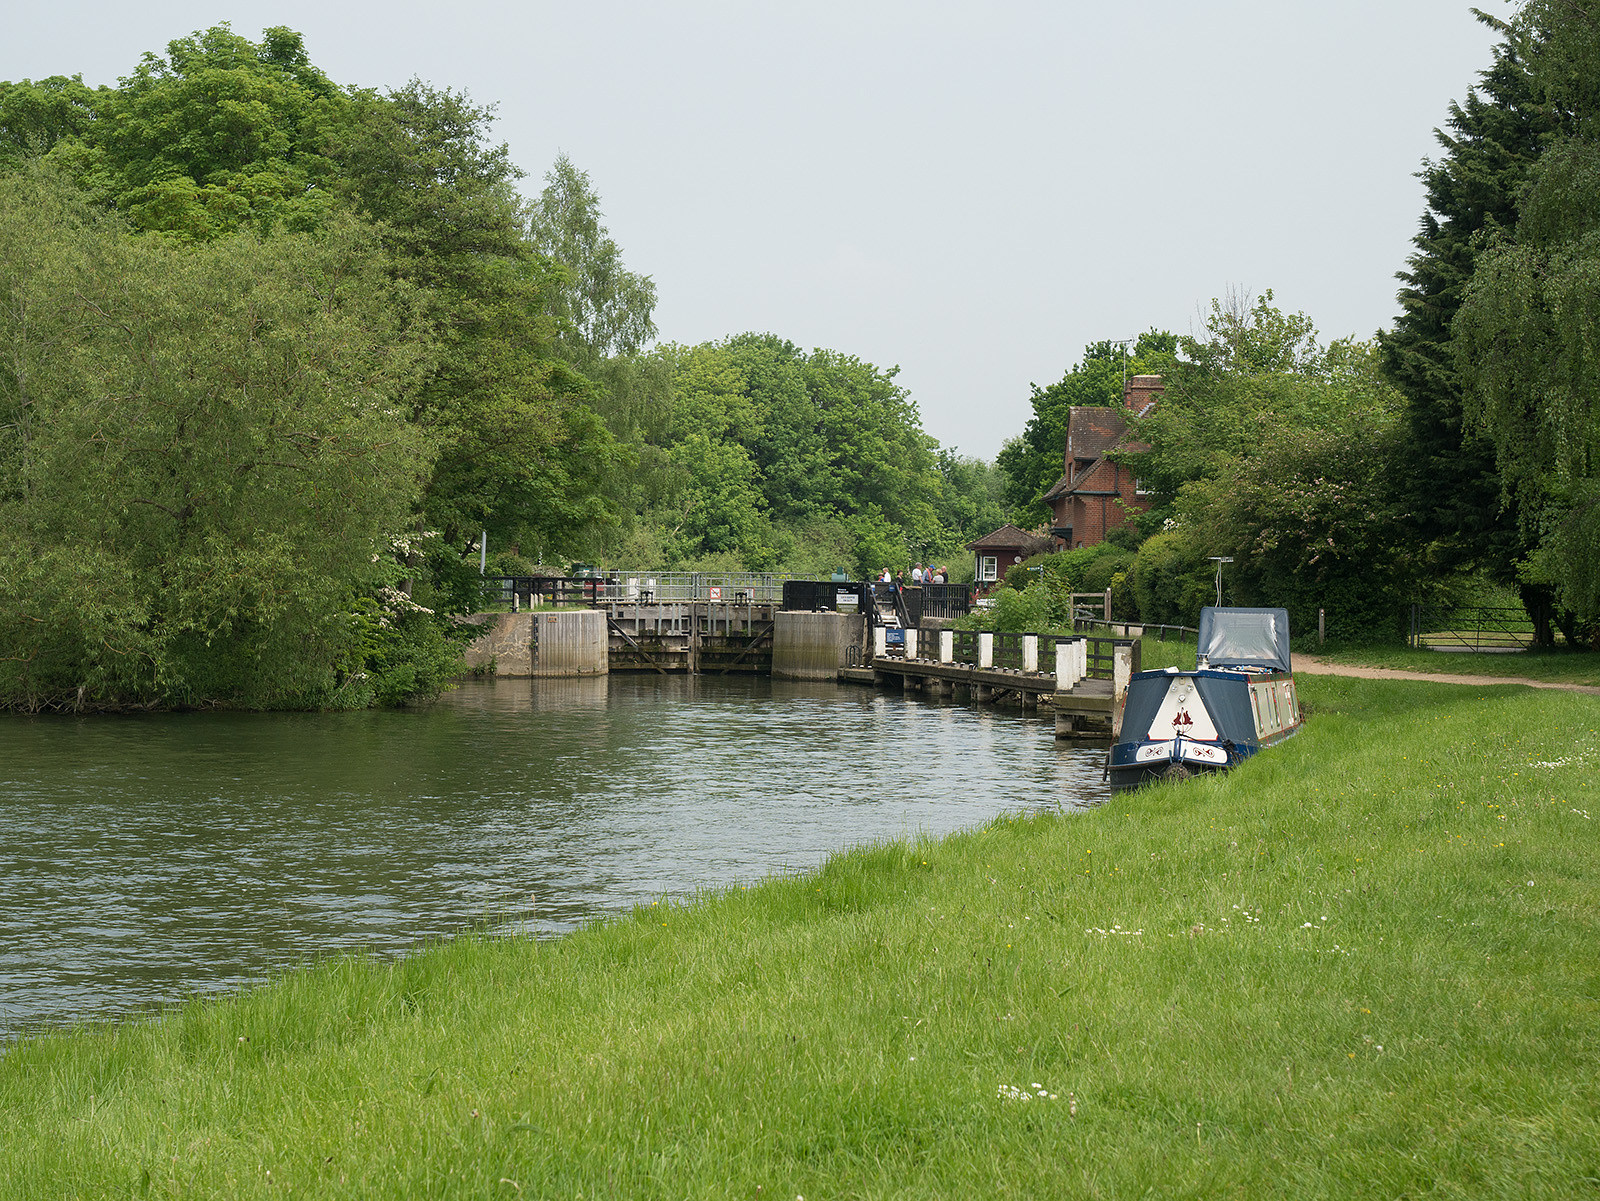 Approaching Abingdon lock, where the path crosses to the opposite bank